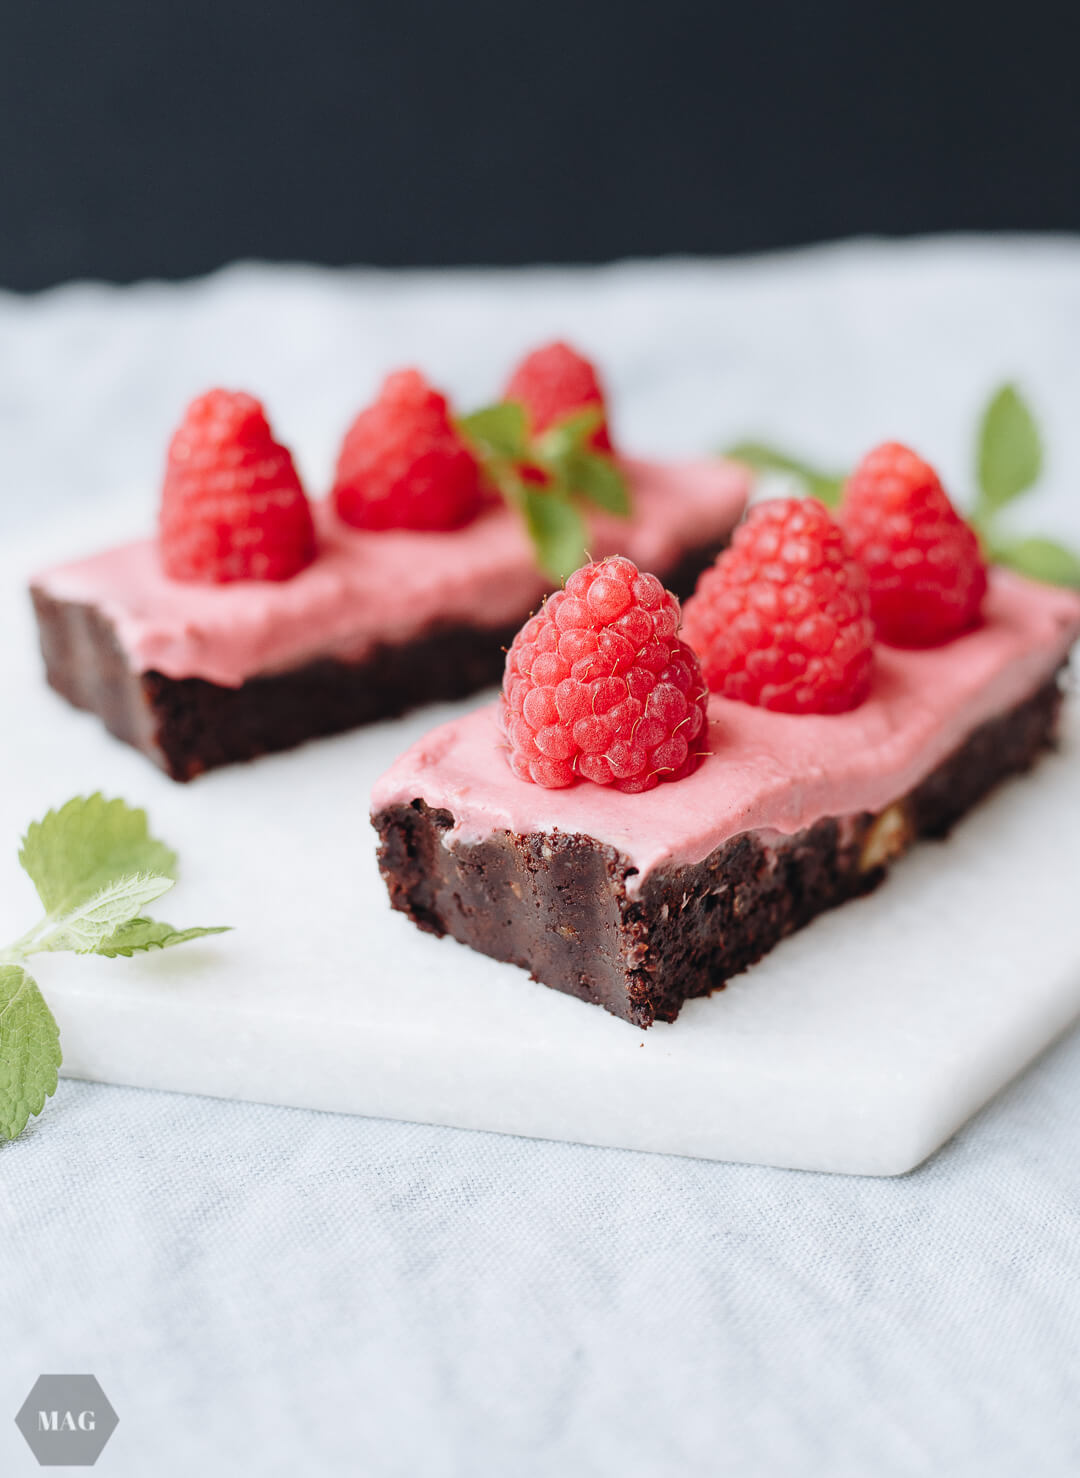 No bake Brownies mit Himbeer-Topping, no bake Brownie mit Himbeer-Topping, Himbeer-Brownie, Himbeer-Brownie no bake, Himbeer-Brownie vegan, Himbeer Kuchen vegan ohne Backen, Himbeer Kuchen ohne Backen, Himbeer Kuchen sommerlich vegan, Himbeer Brownies vegan